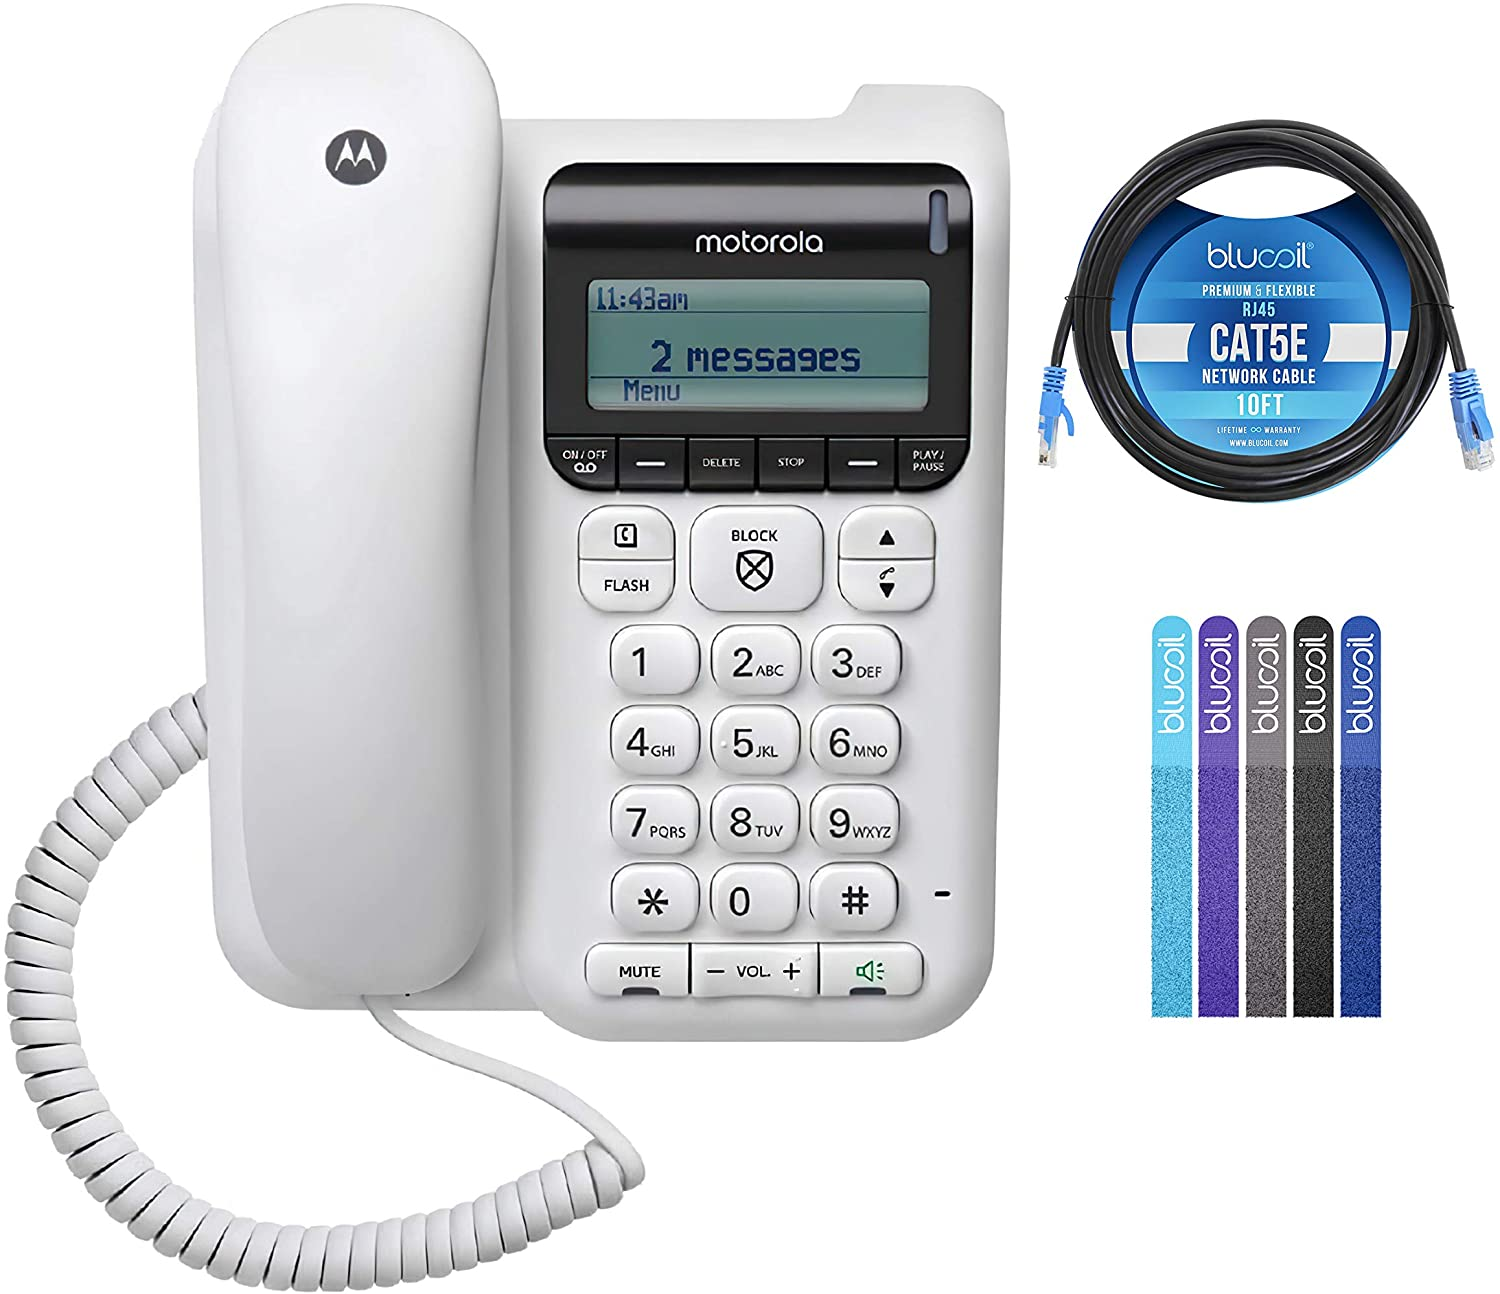 Motorola CT610 Corded Telephone with Answering Machine & Call Blocking Bundle with 10-FT 1 Gbps Cat5e Cable, and Blucoil 5-Pack of Reusable Cable Ties